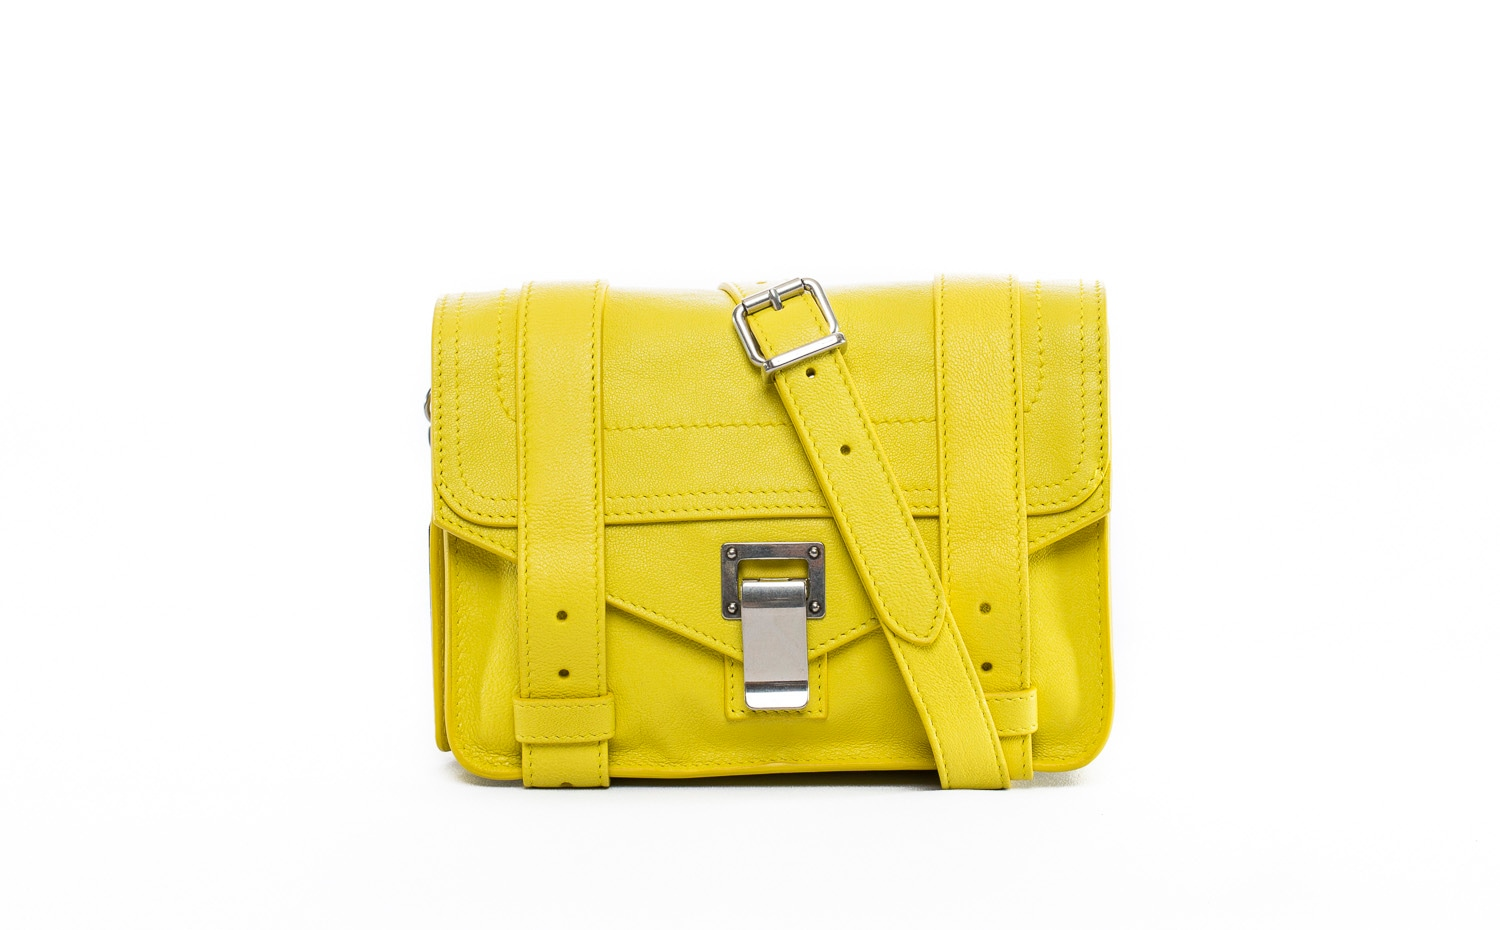 Proenza Schouler: PS1 Mini Crossbody in Absinthe